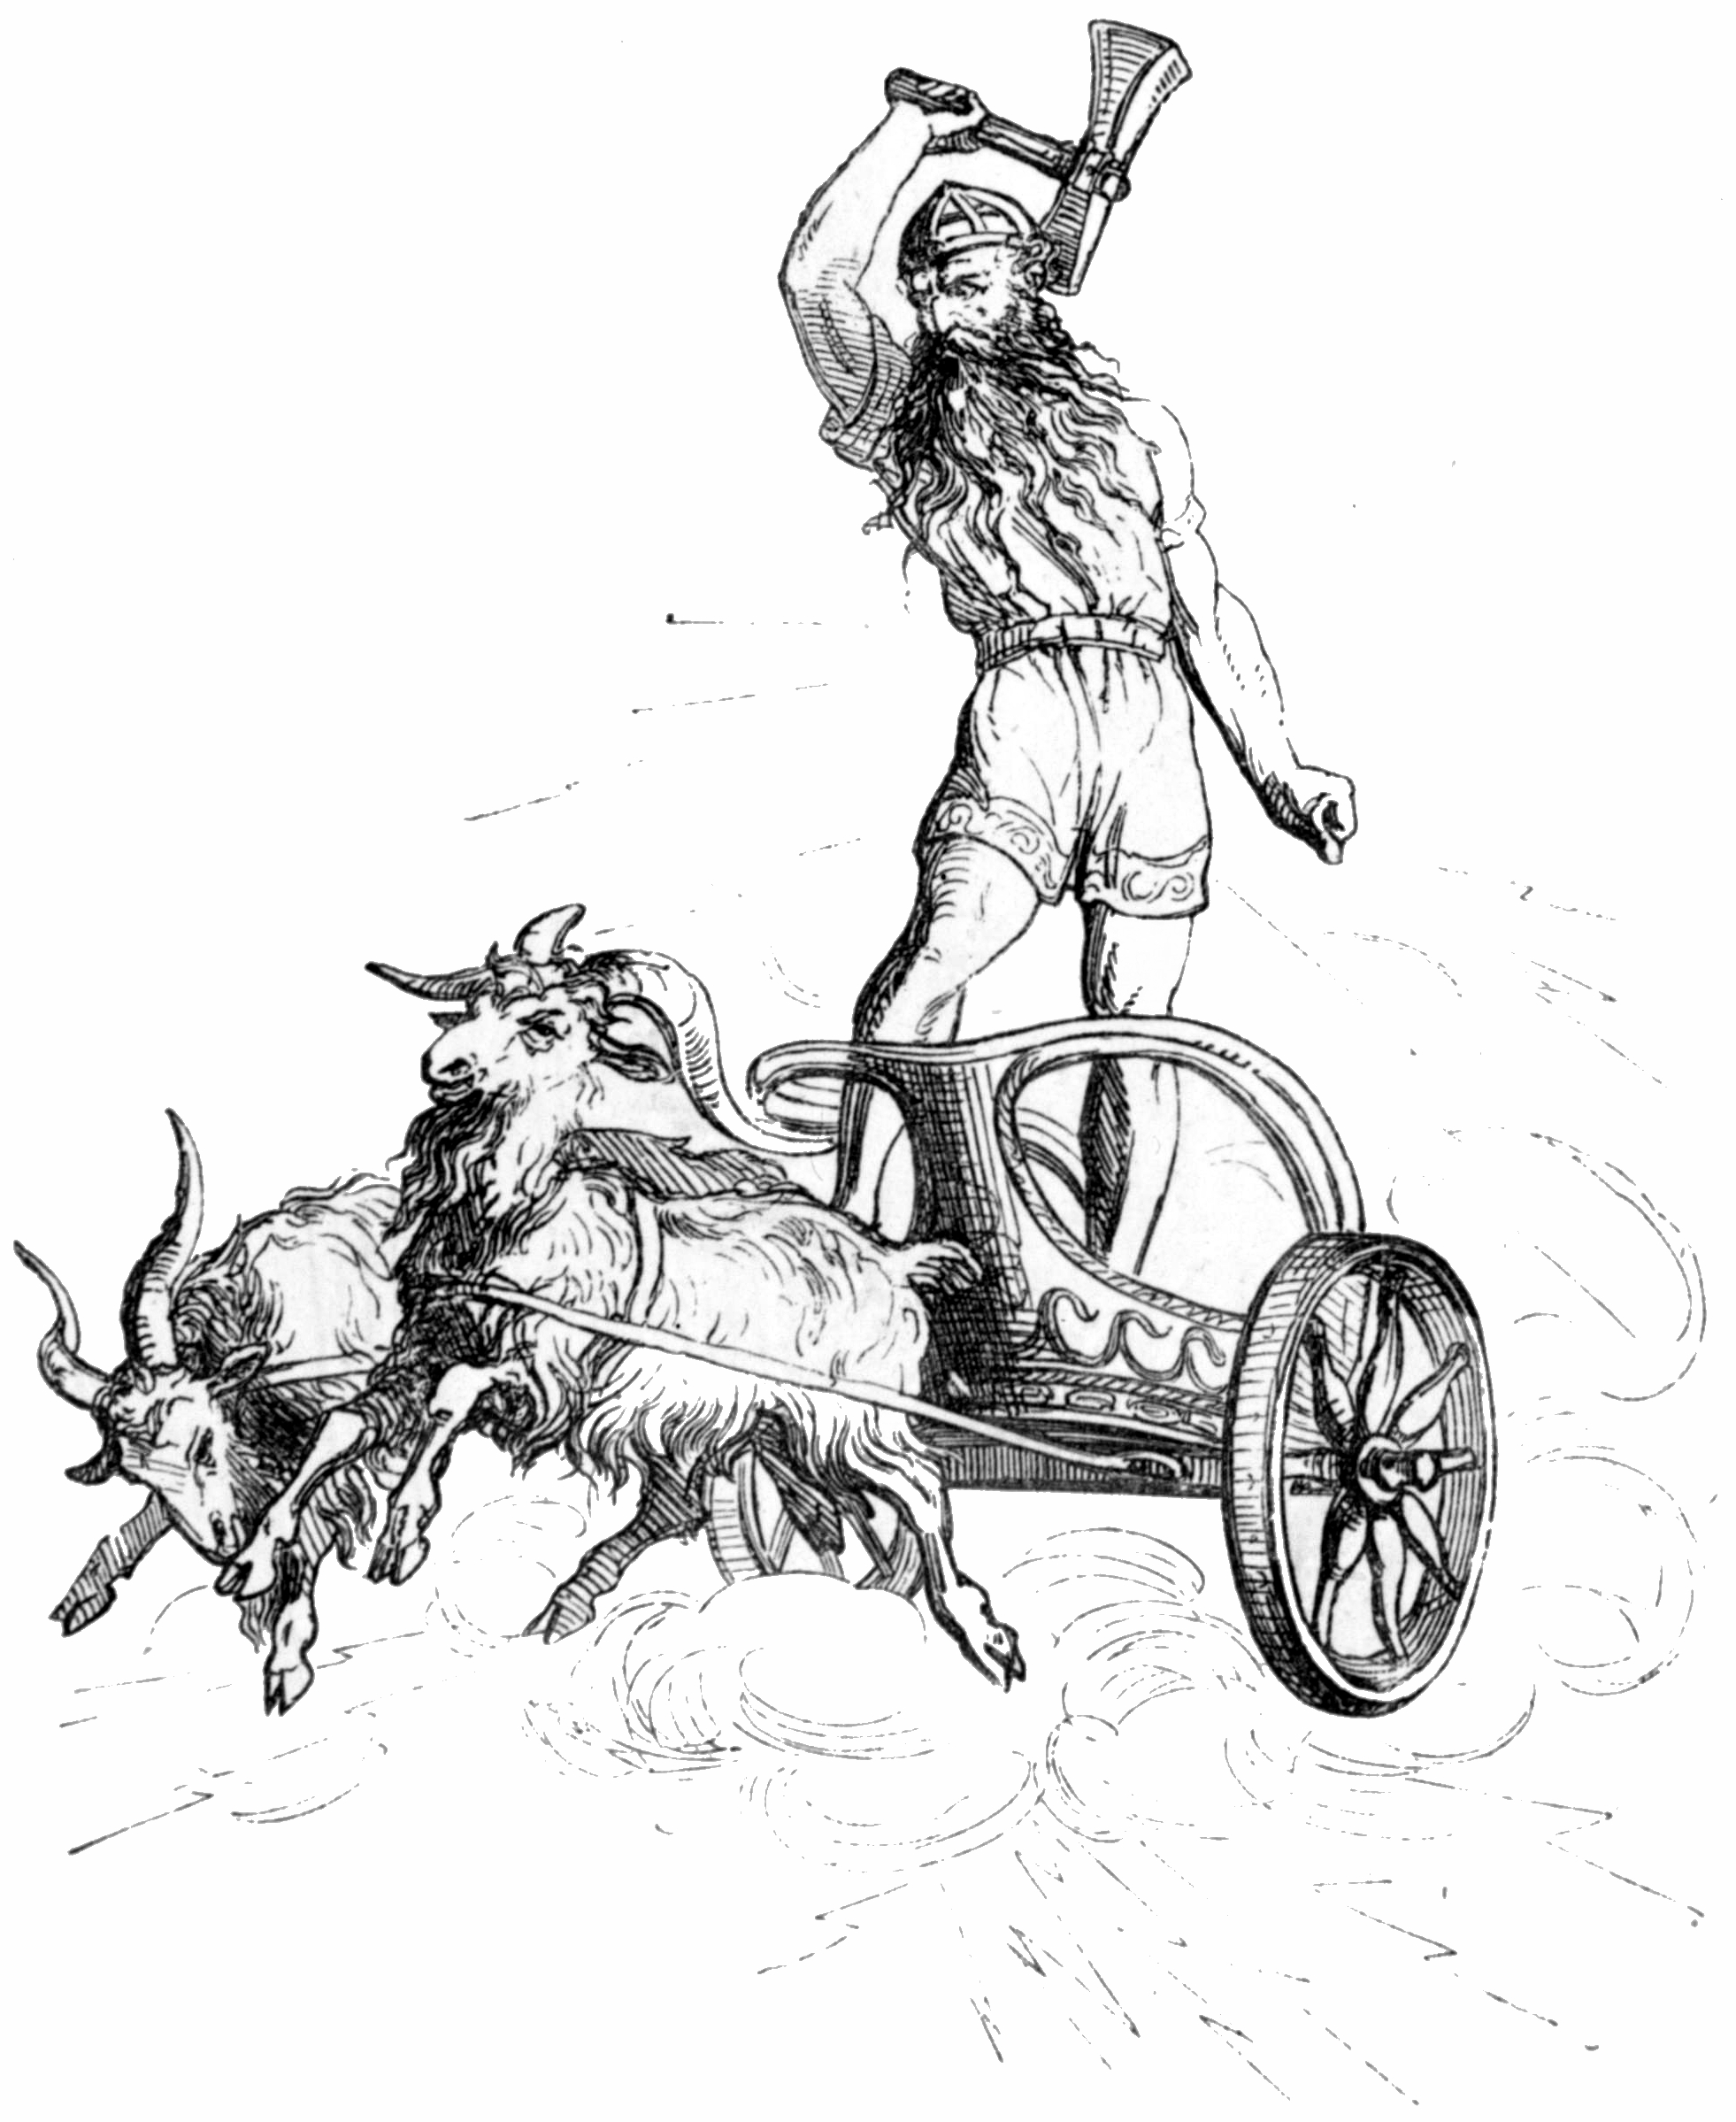 Thor's chariot being pulled by cosmic goats